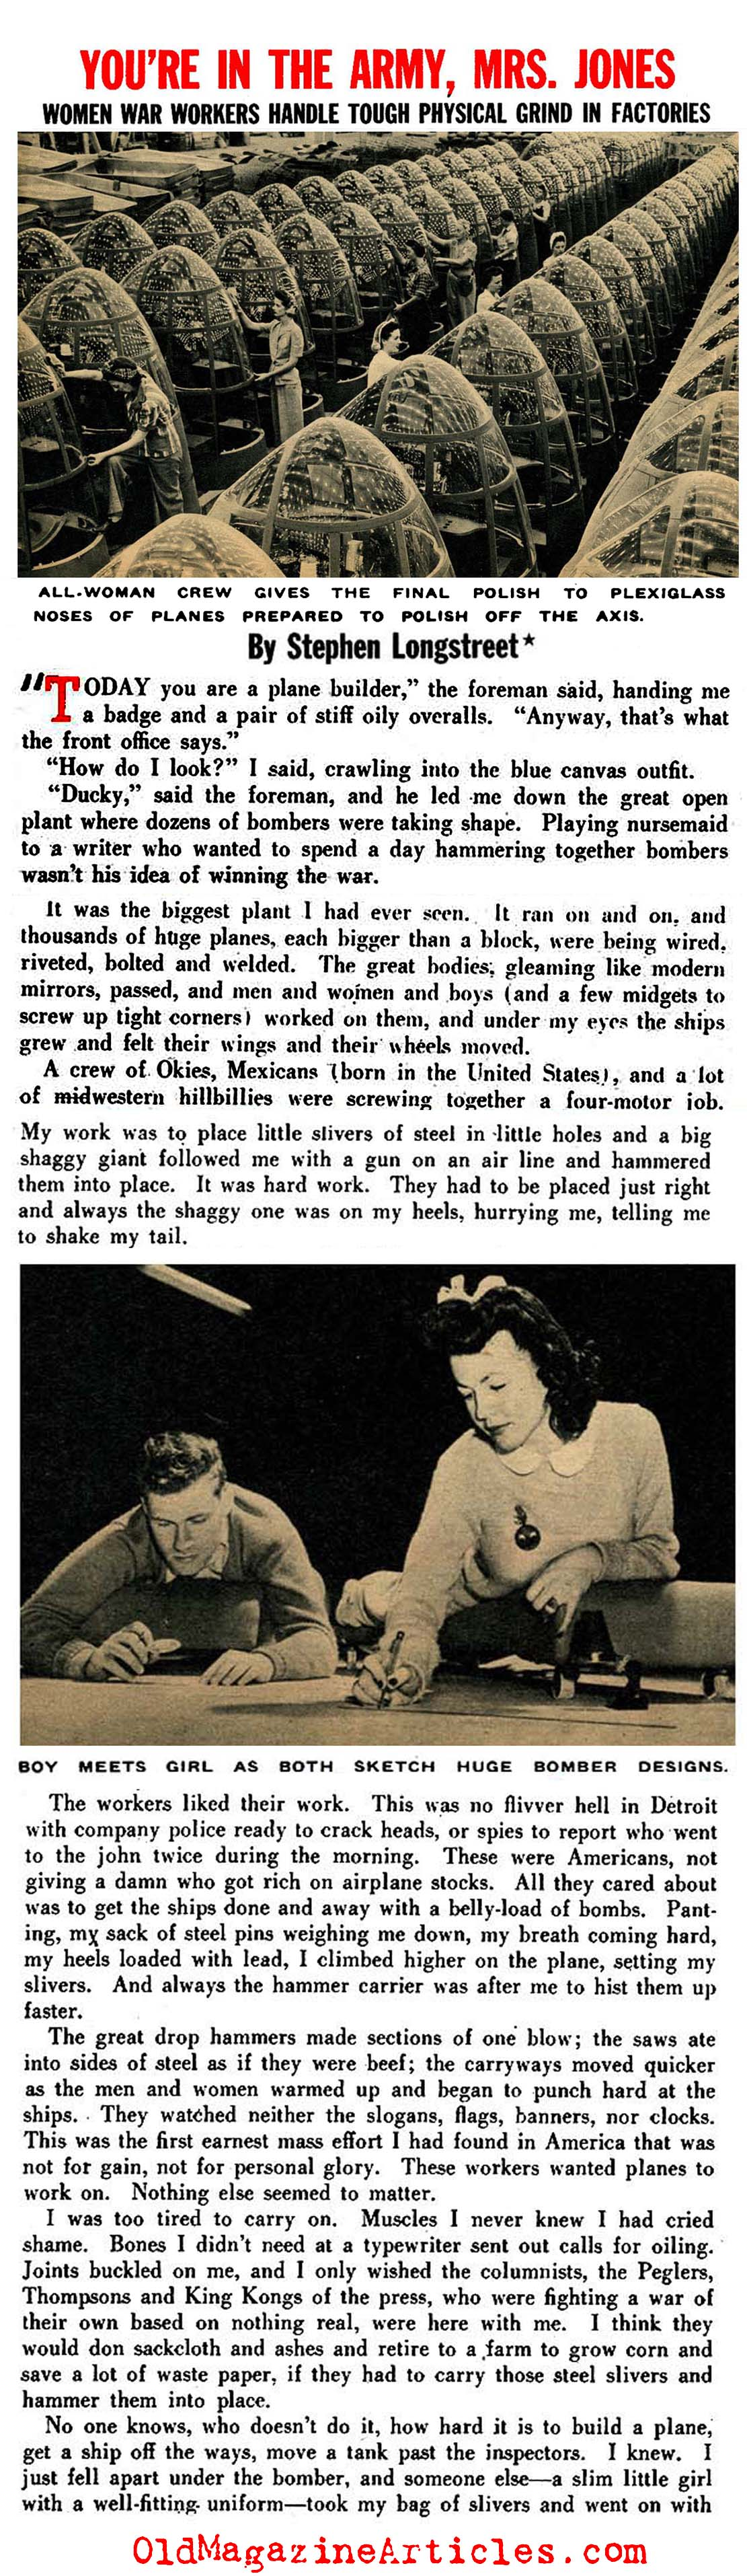 Women War Workers (Pic Magazine, 1943)